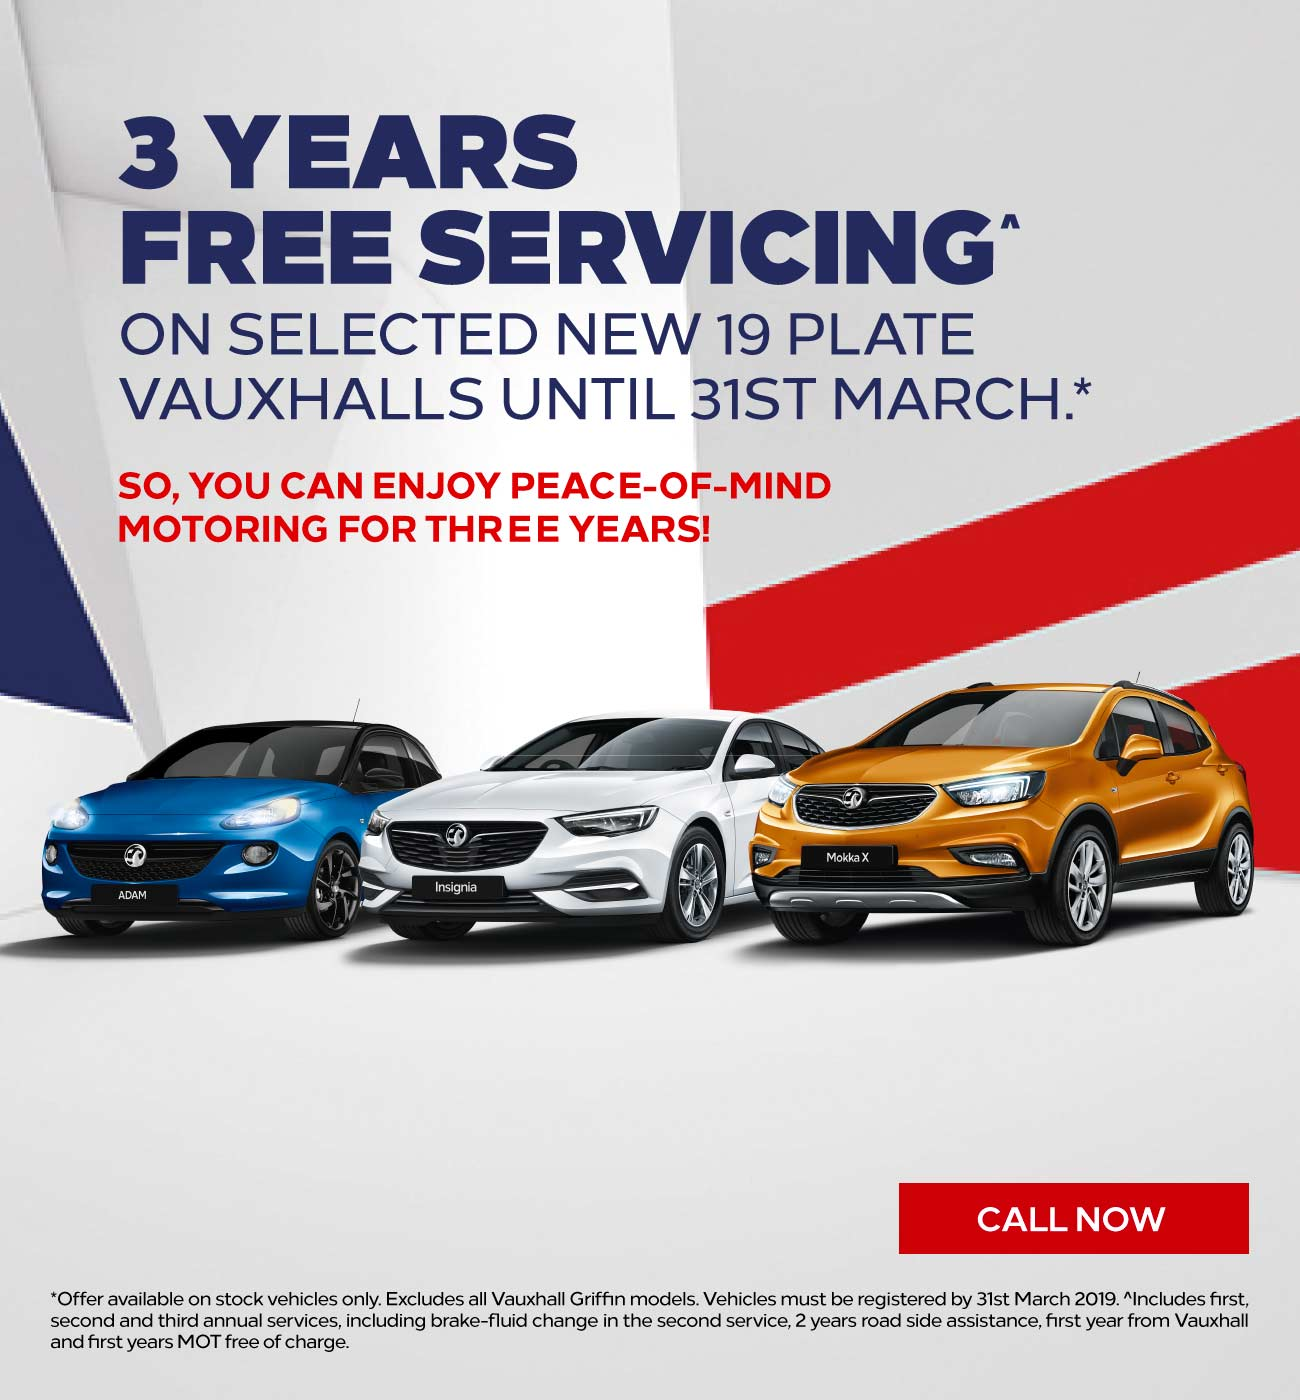 [Vauxhall Generic] Vauxhall 3 Years Free Servicing 180319 Banner 3